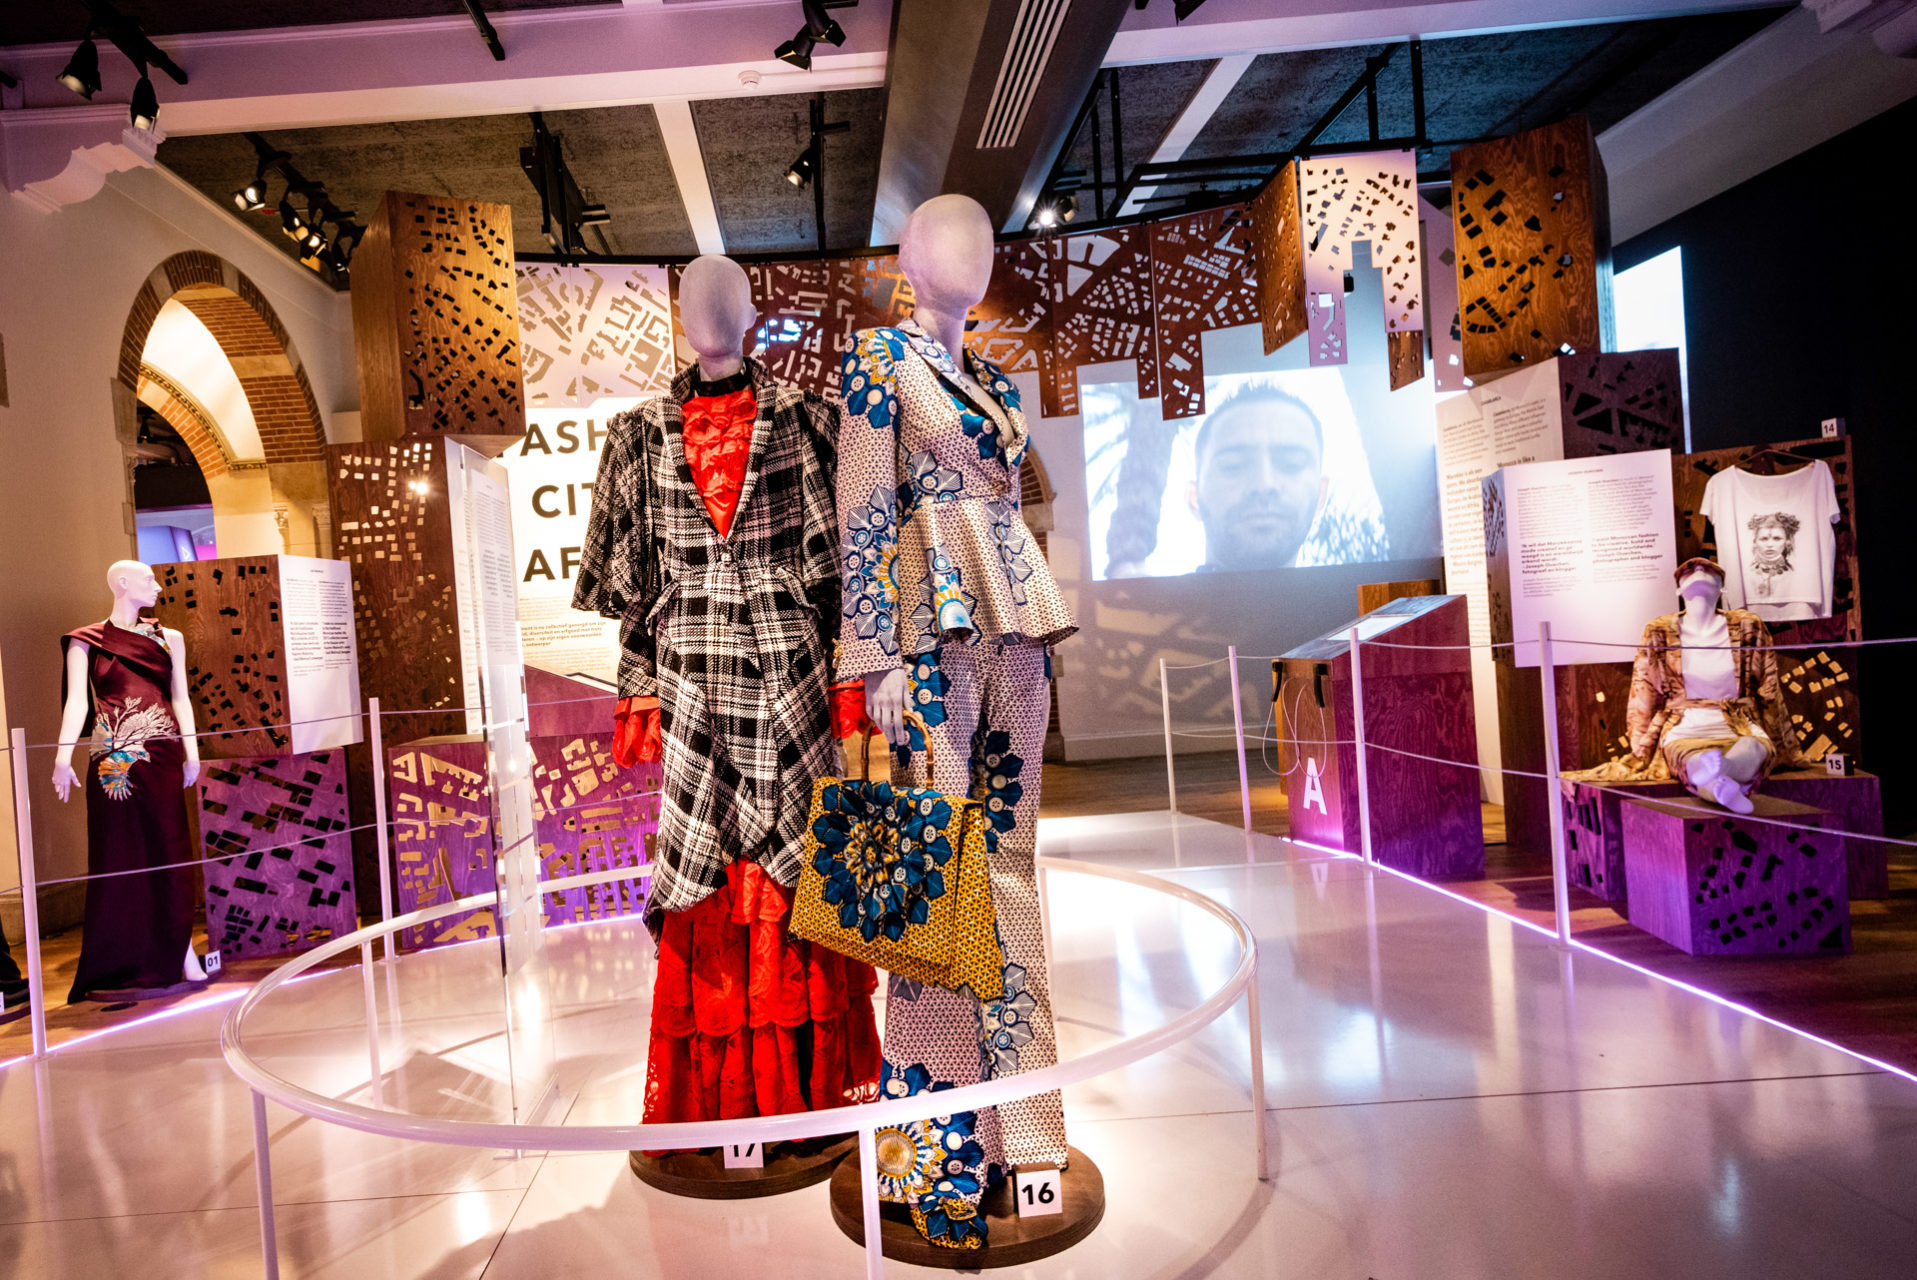 Fashion cities Africa, Tropenmuseum 2018.